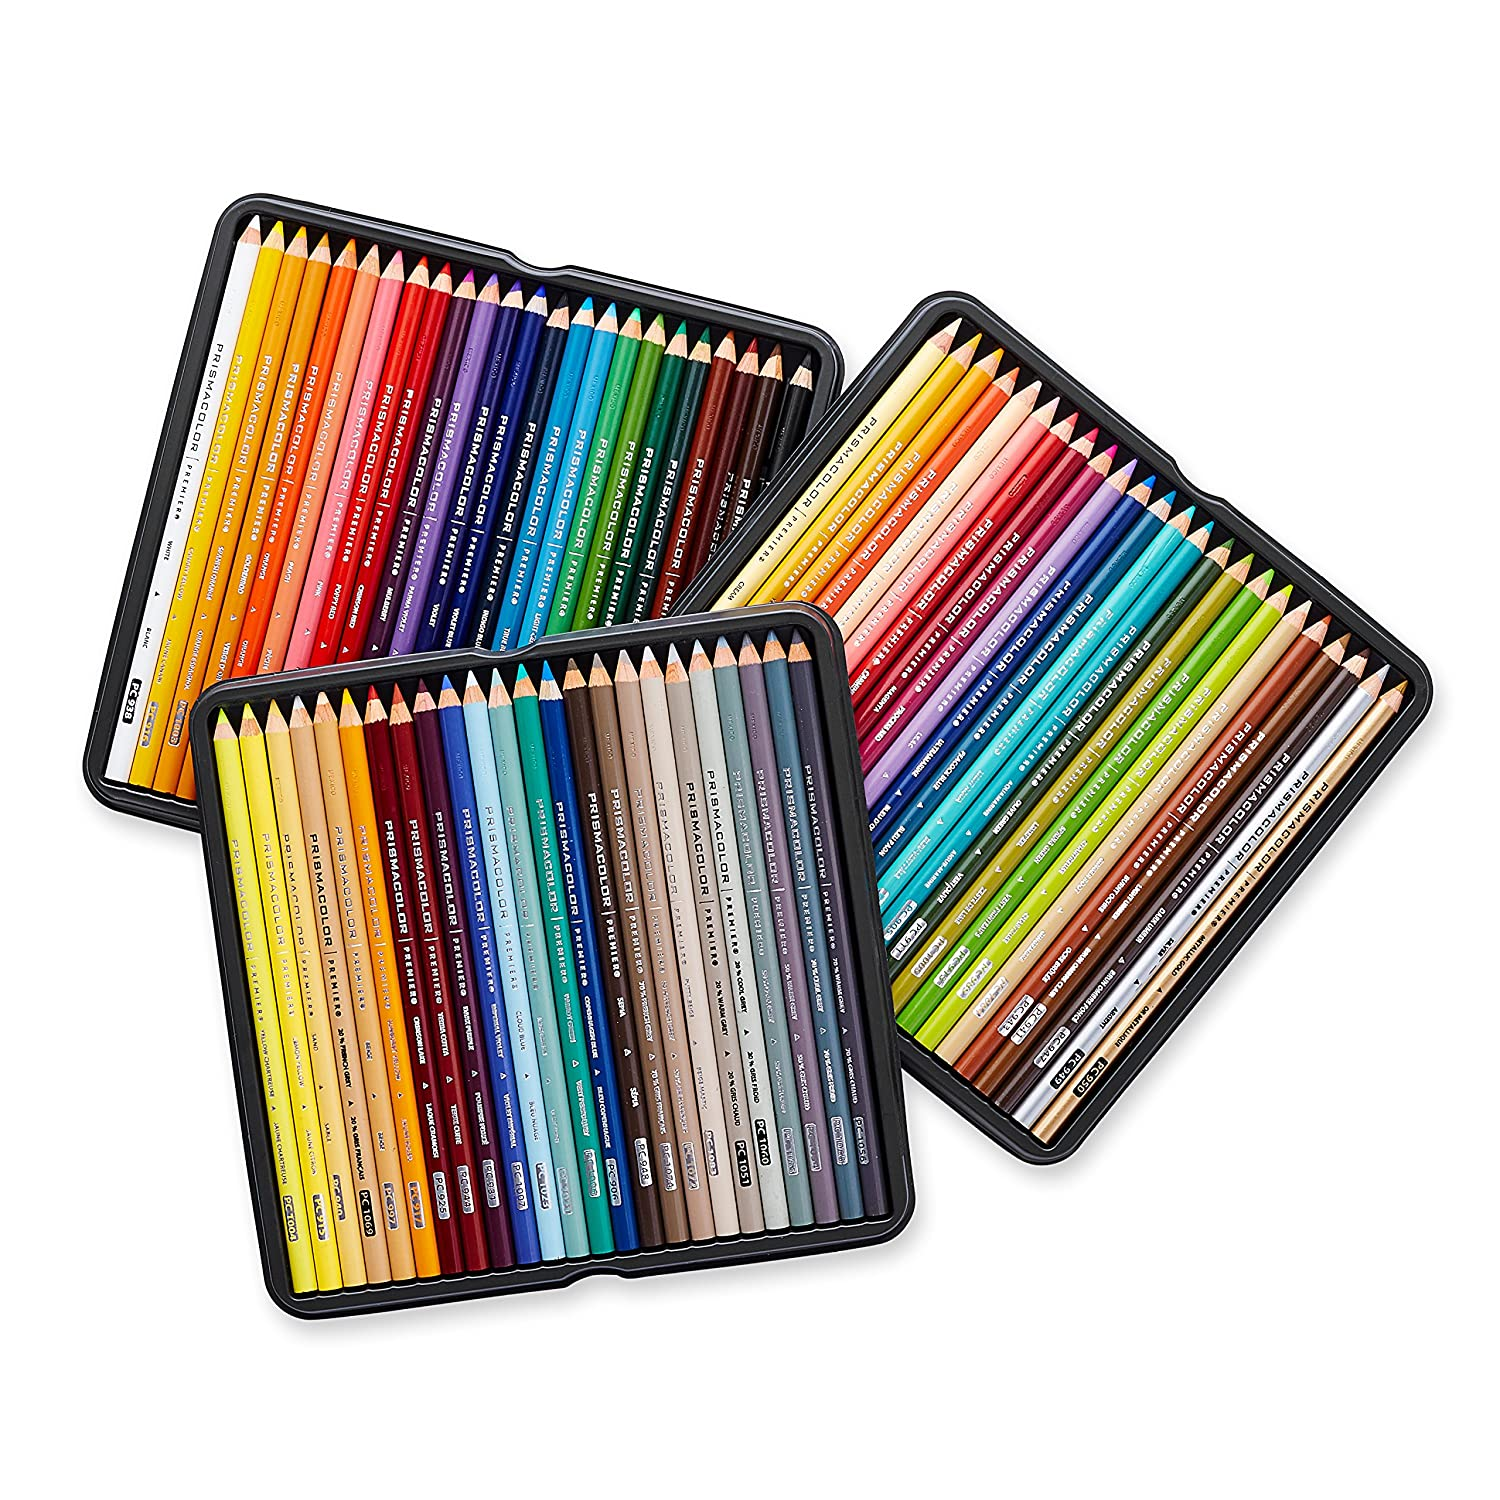 Prismacolor Premier Soft Core Colored Pencils, 72 Colored Pencils at Amazon.com